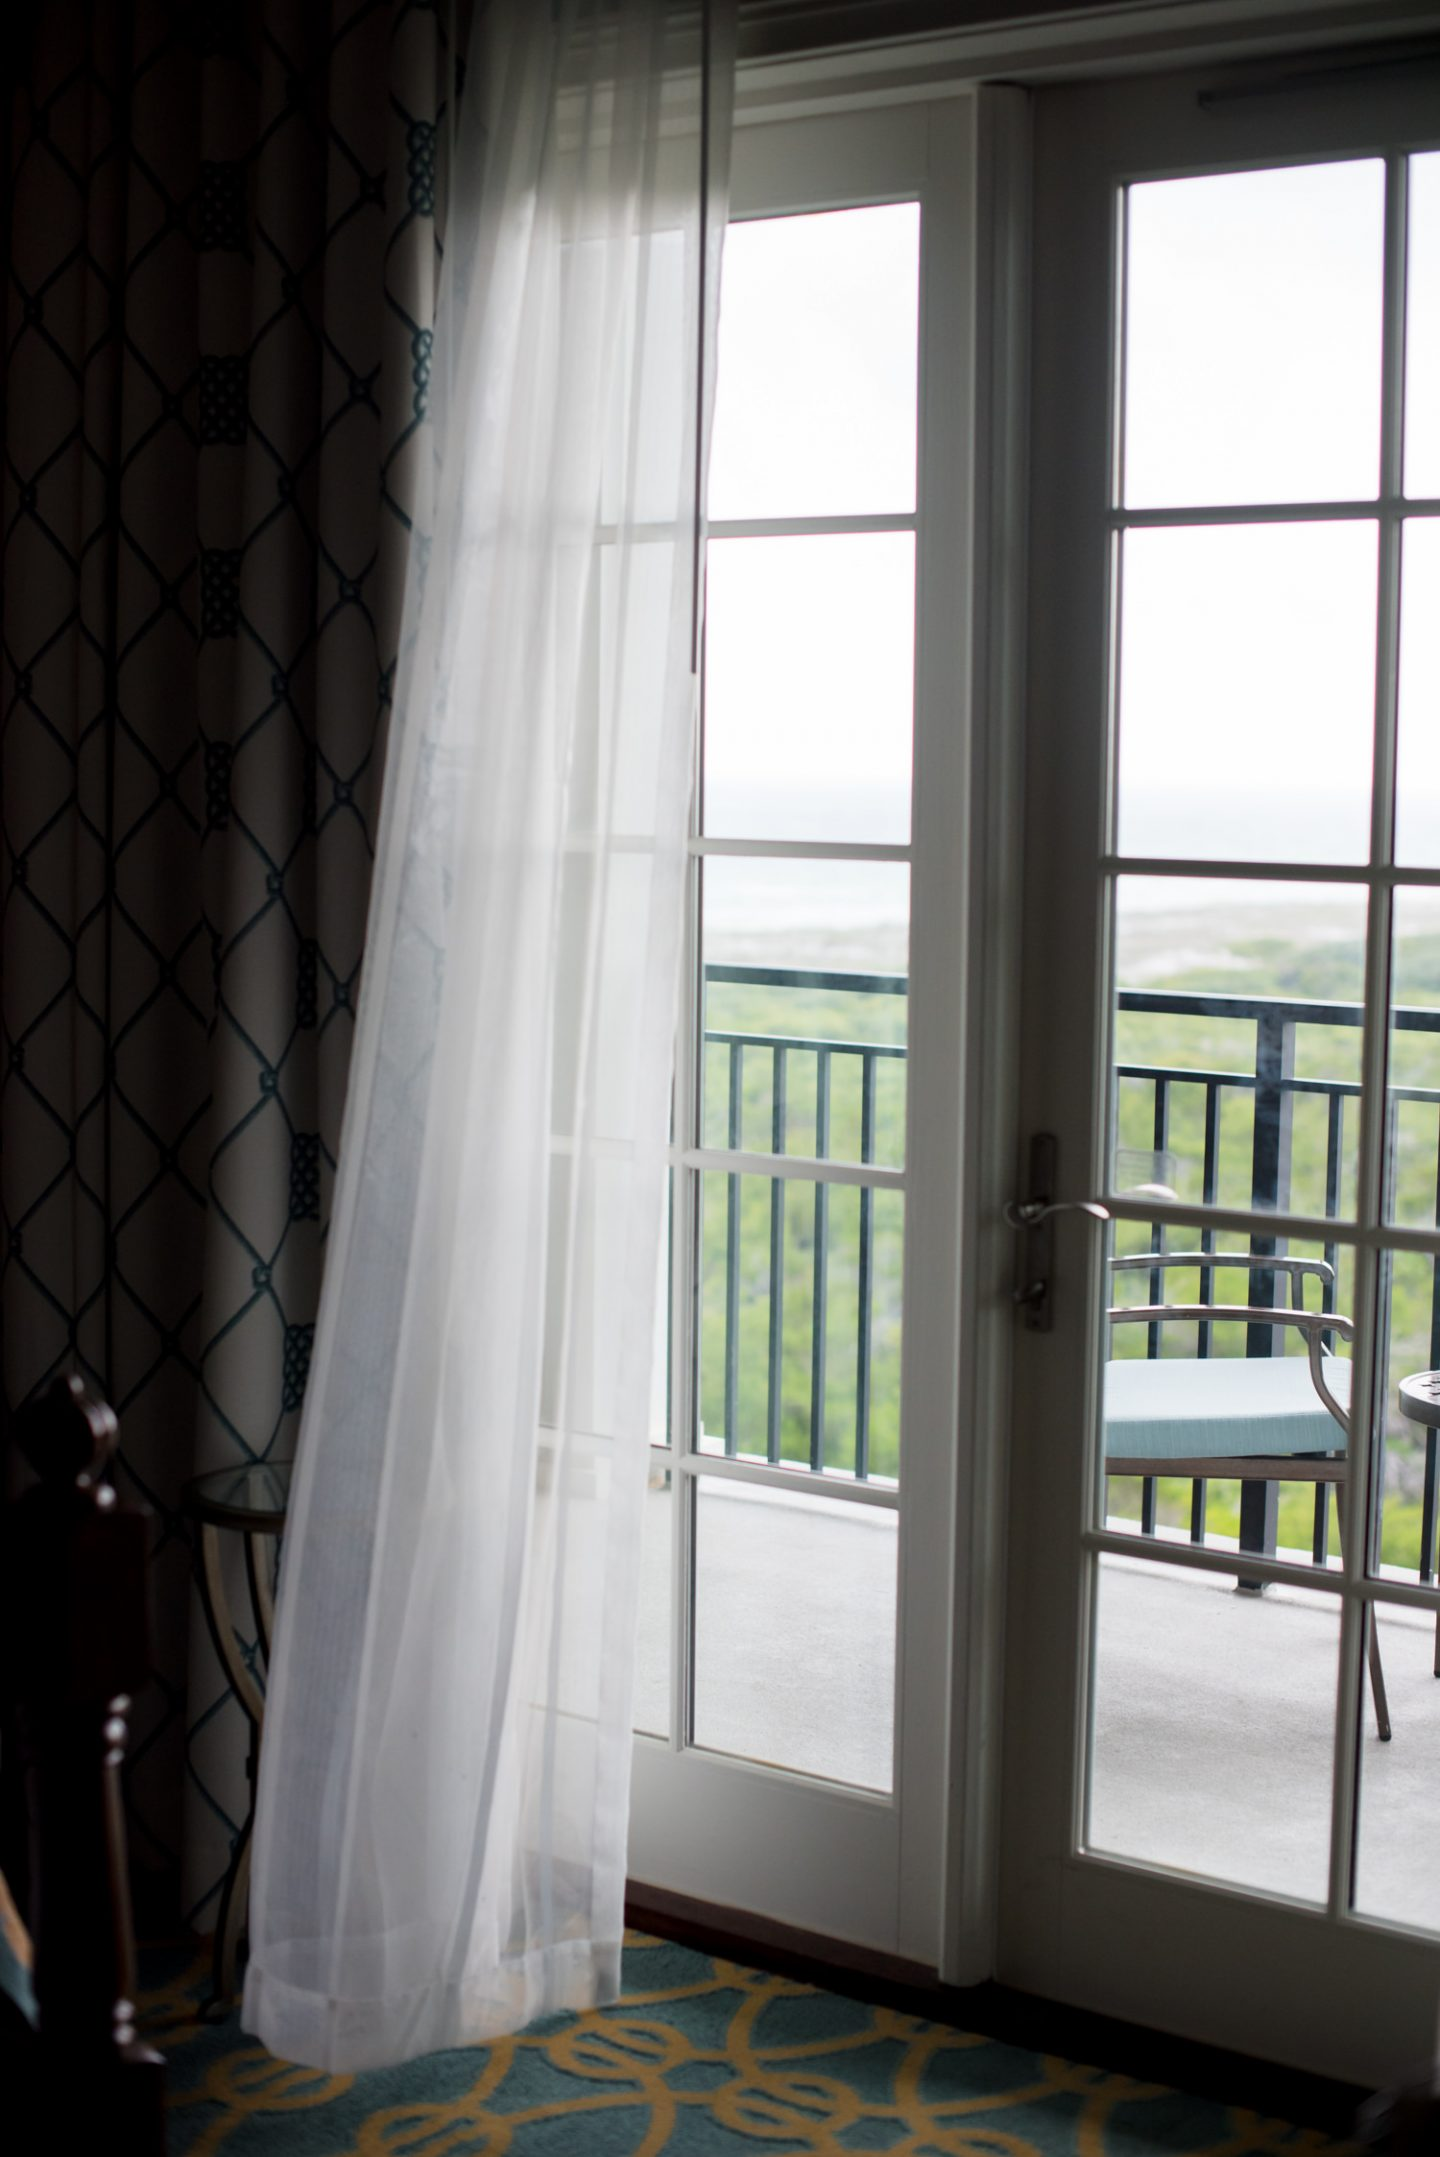 A Weekend at The Henderson   Where to Stay in Destin, Florida   Best Resorts in Destin, Florida   www.missmollymoon.com    The Henderson Destin, FL review featured by top Atlanta travel blogger, Miss Molly Moon